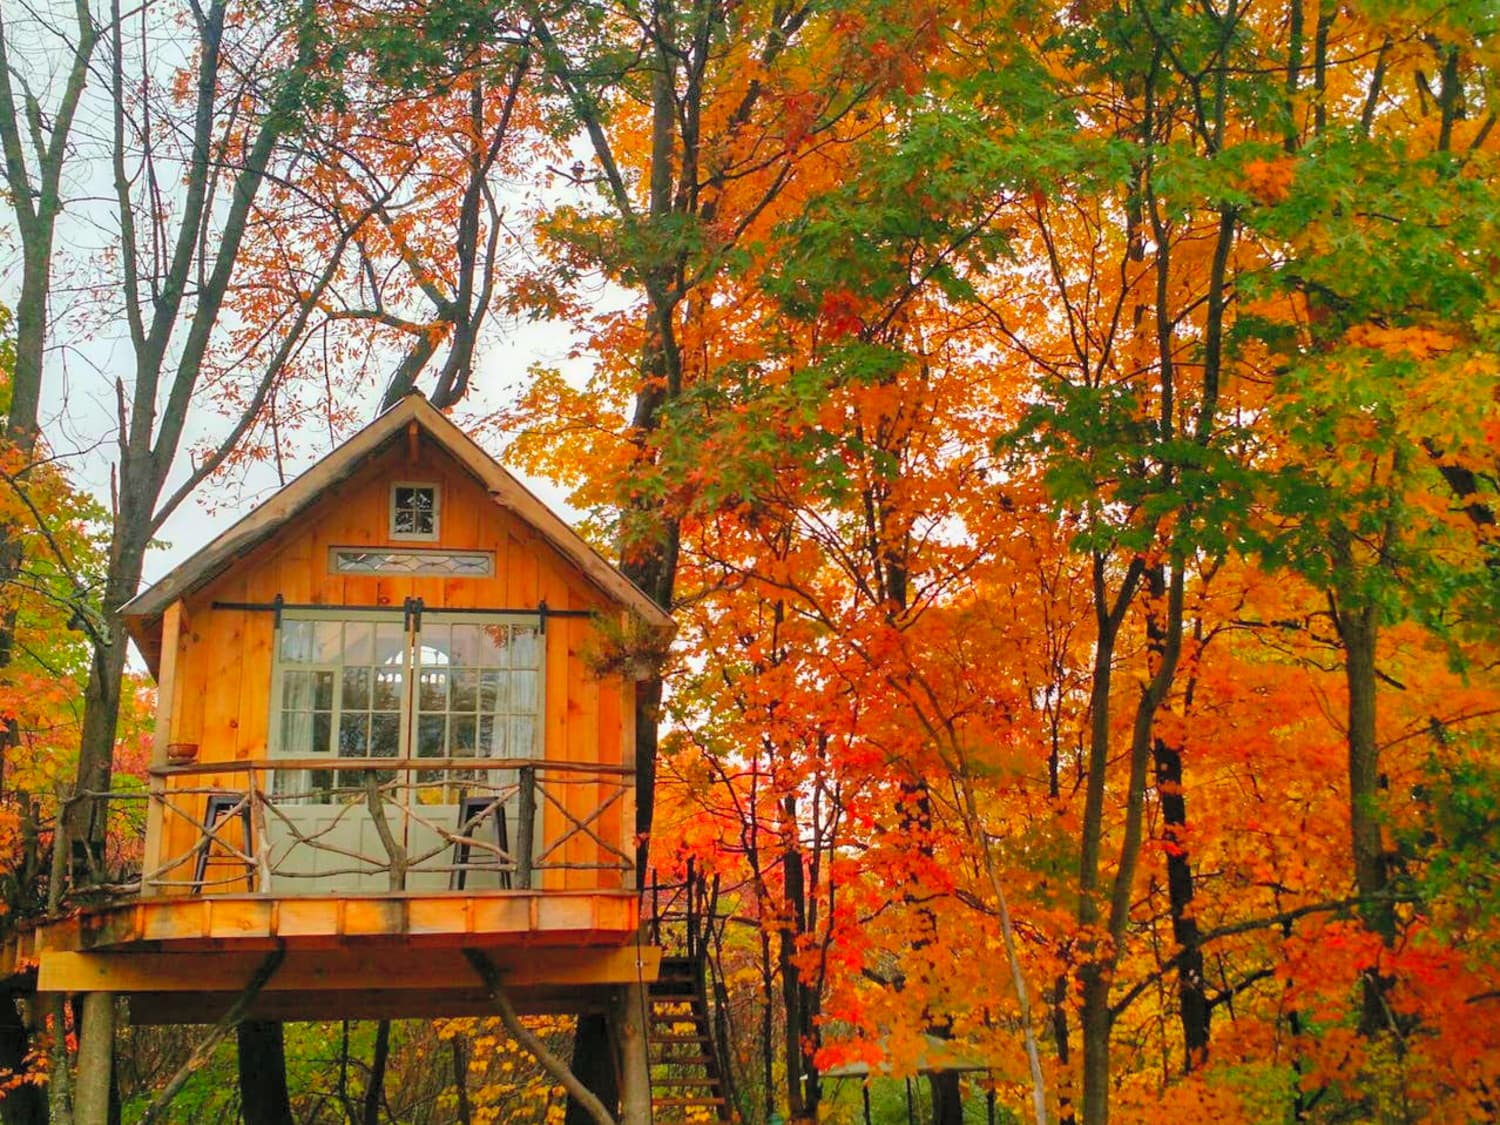 5 Cozy Fall Rentals for Your Next Weekend Trip, Starting at $85 a Night